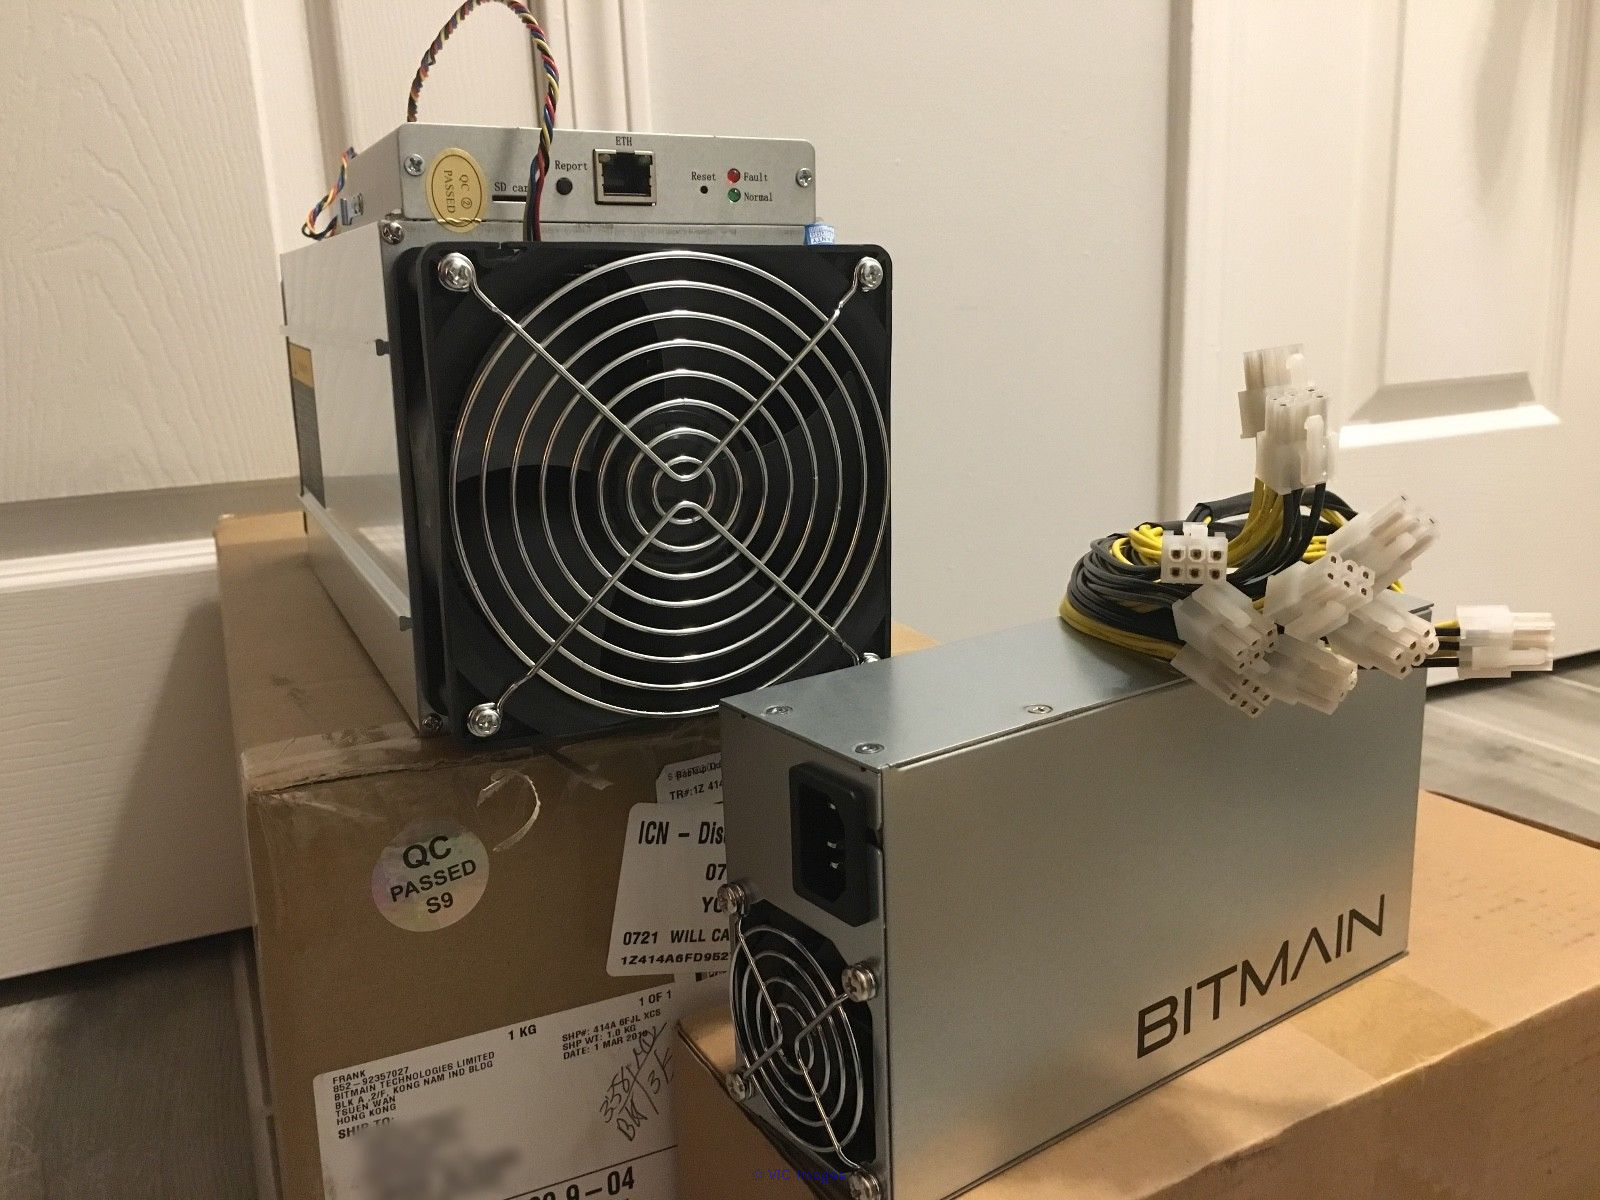 Bitcoin Ant-miner S9 14TH/s / AntMiner A3 / Graphic Cards